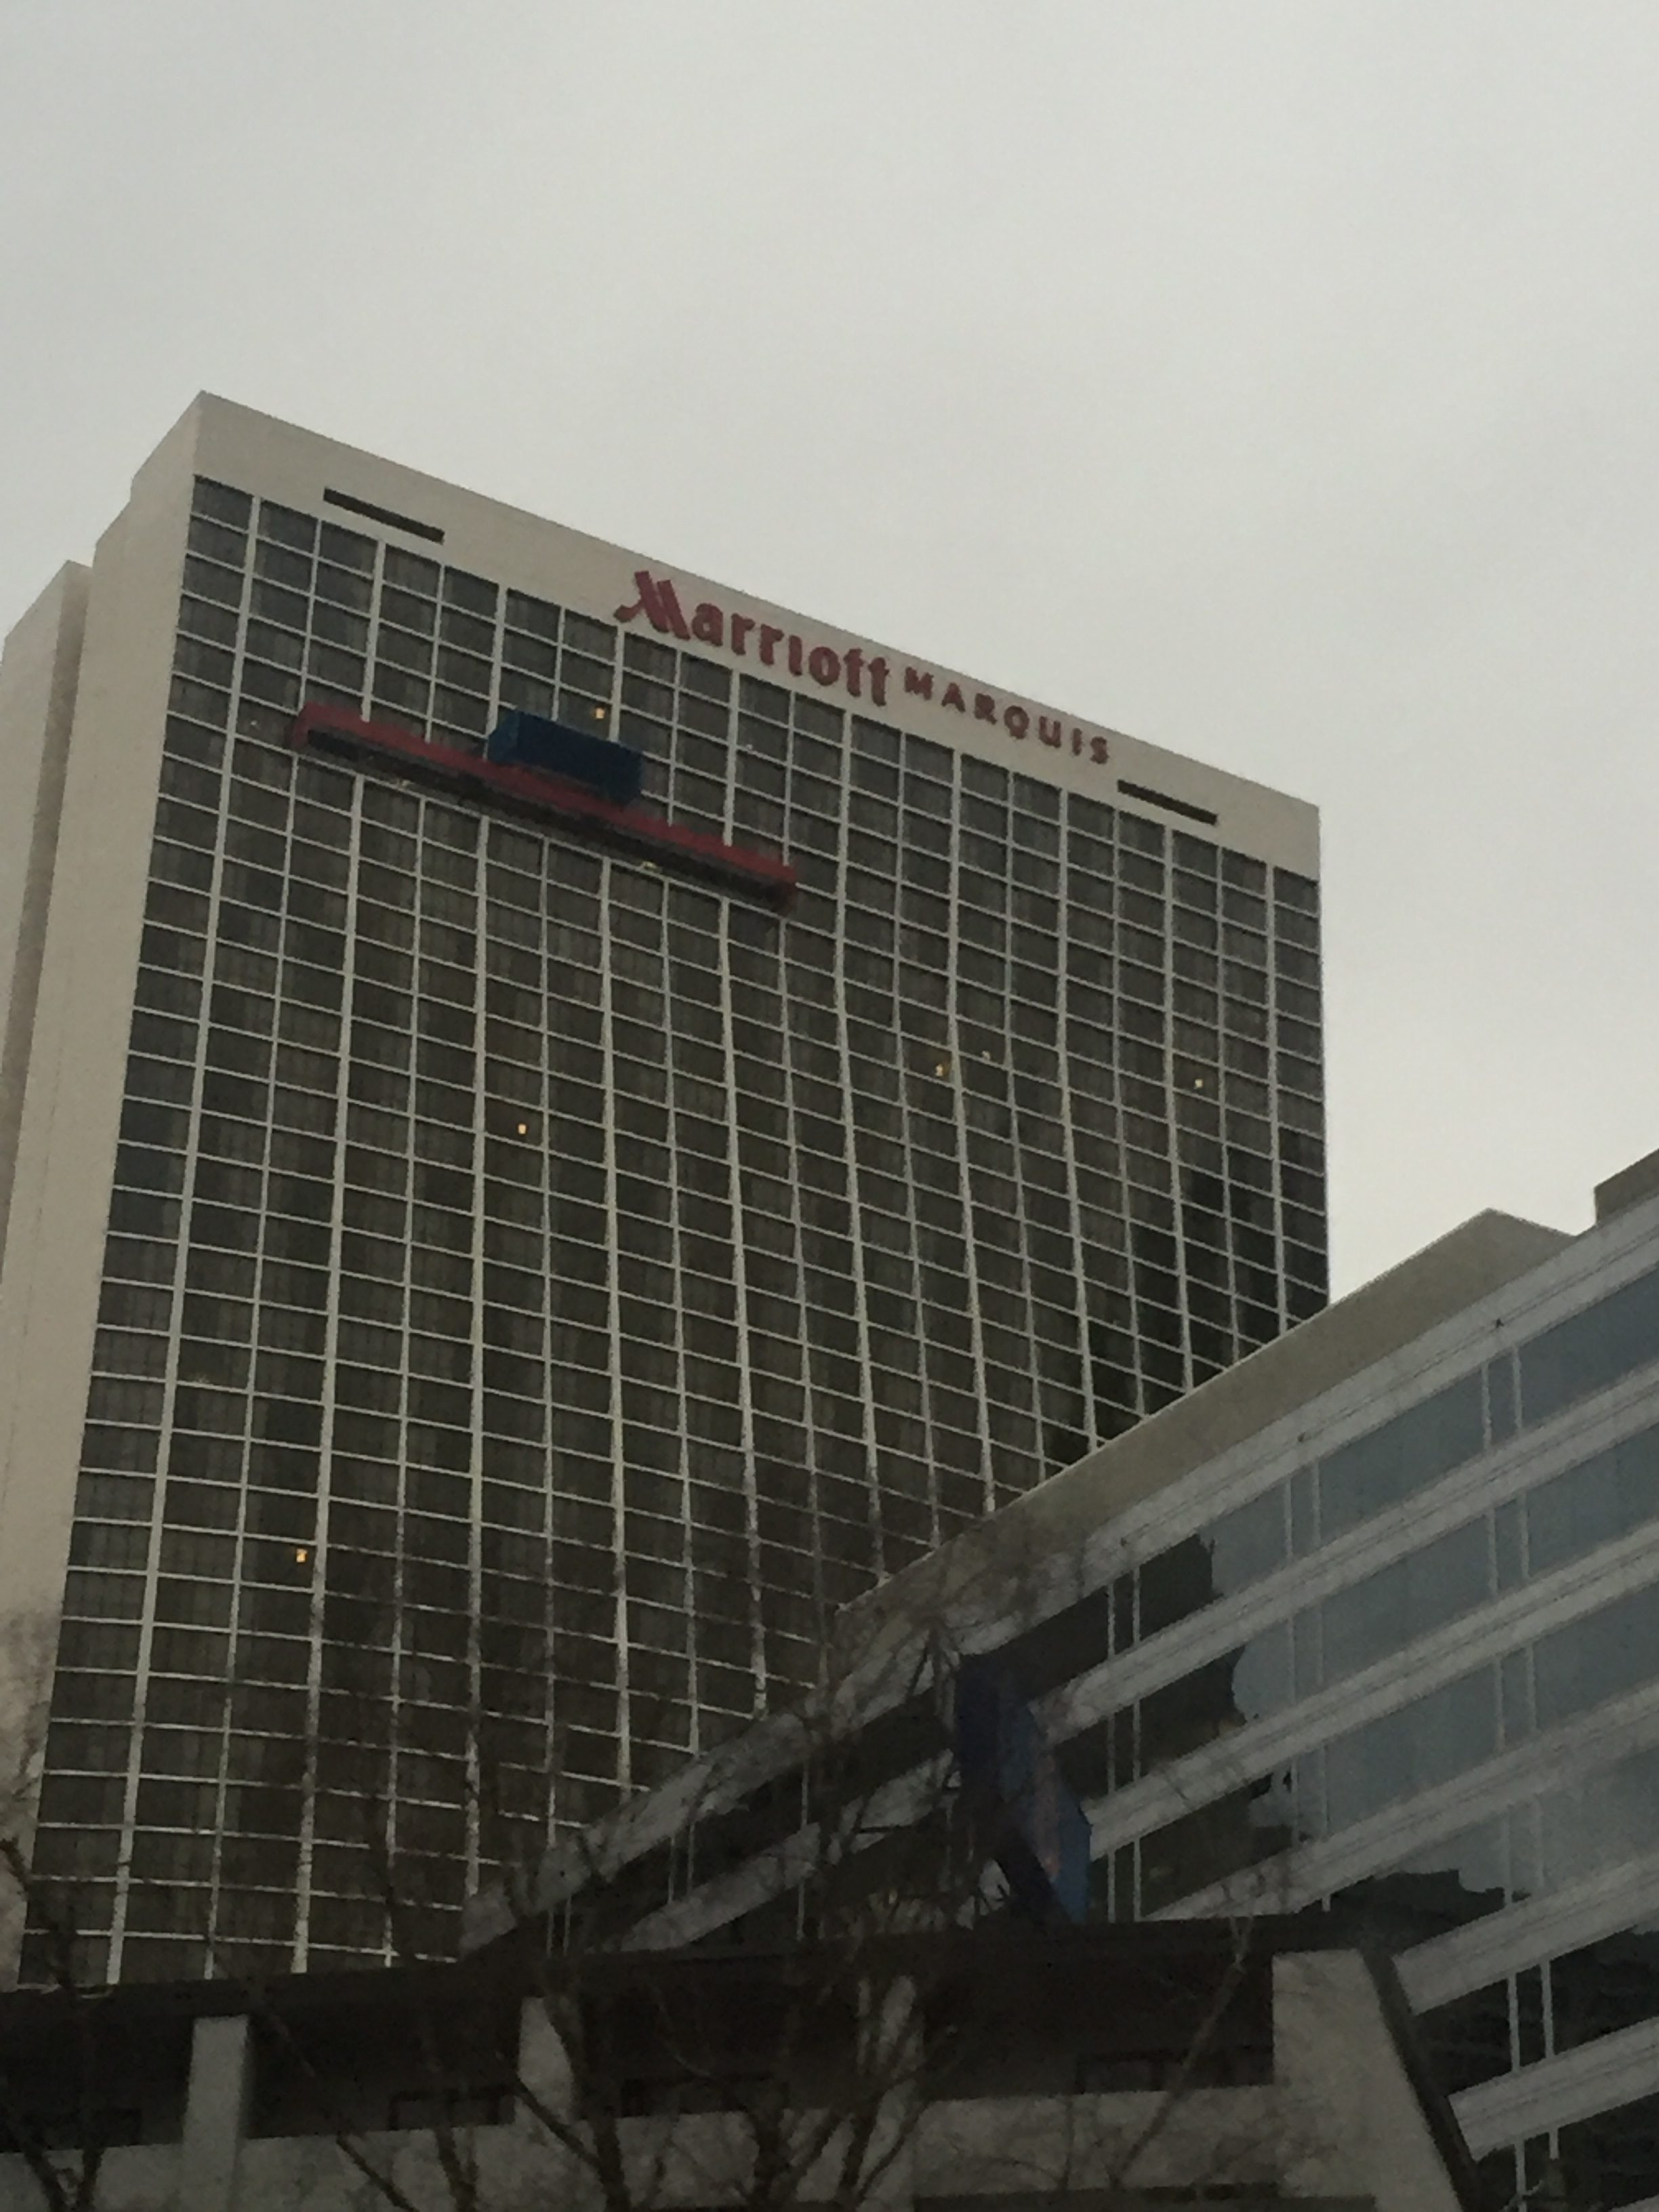 I thought this Marriott hotel building was pretty cool.